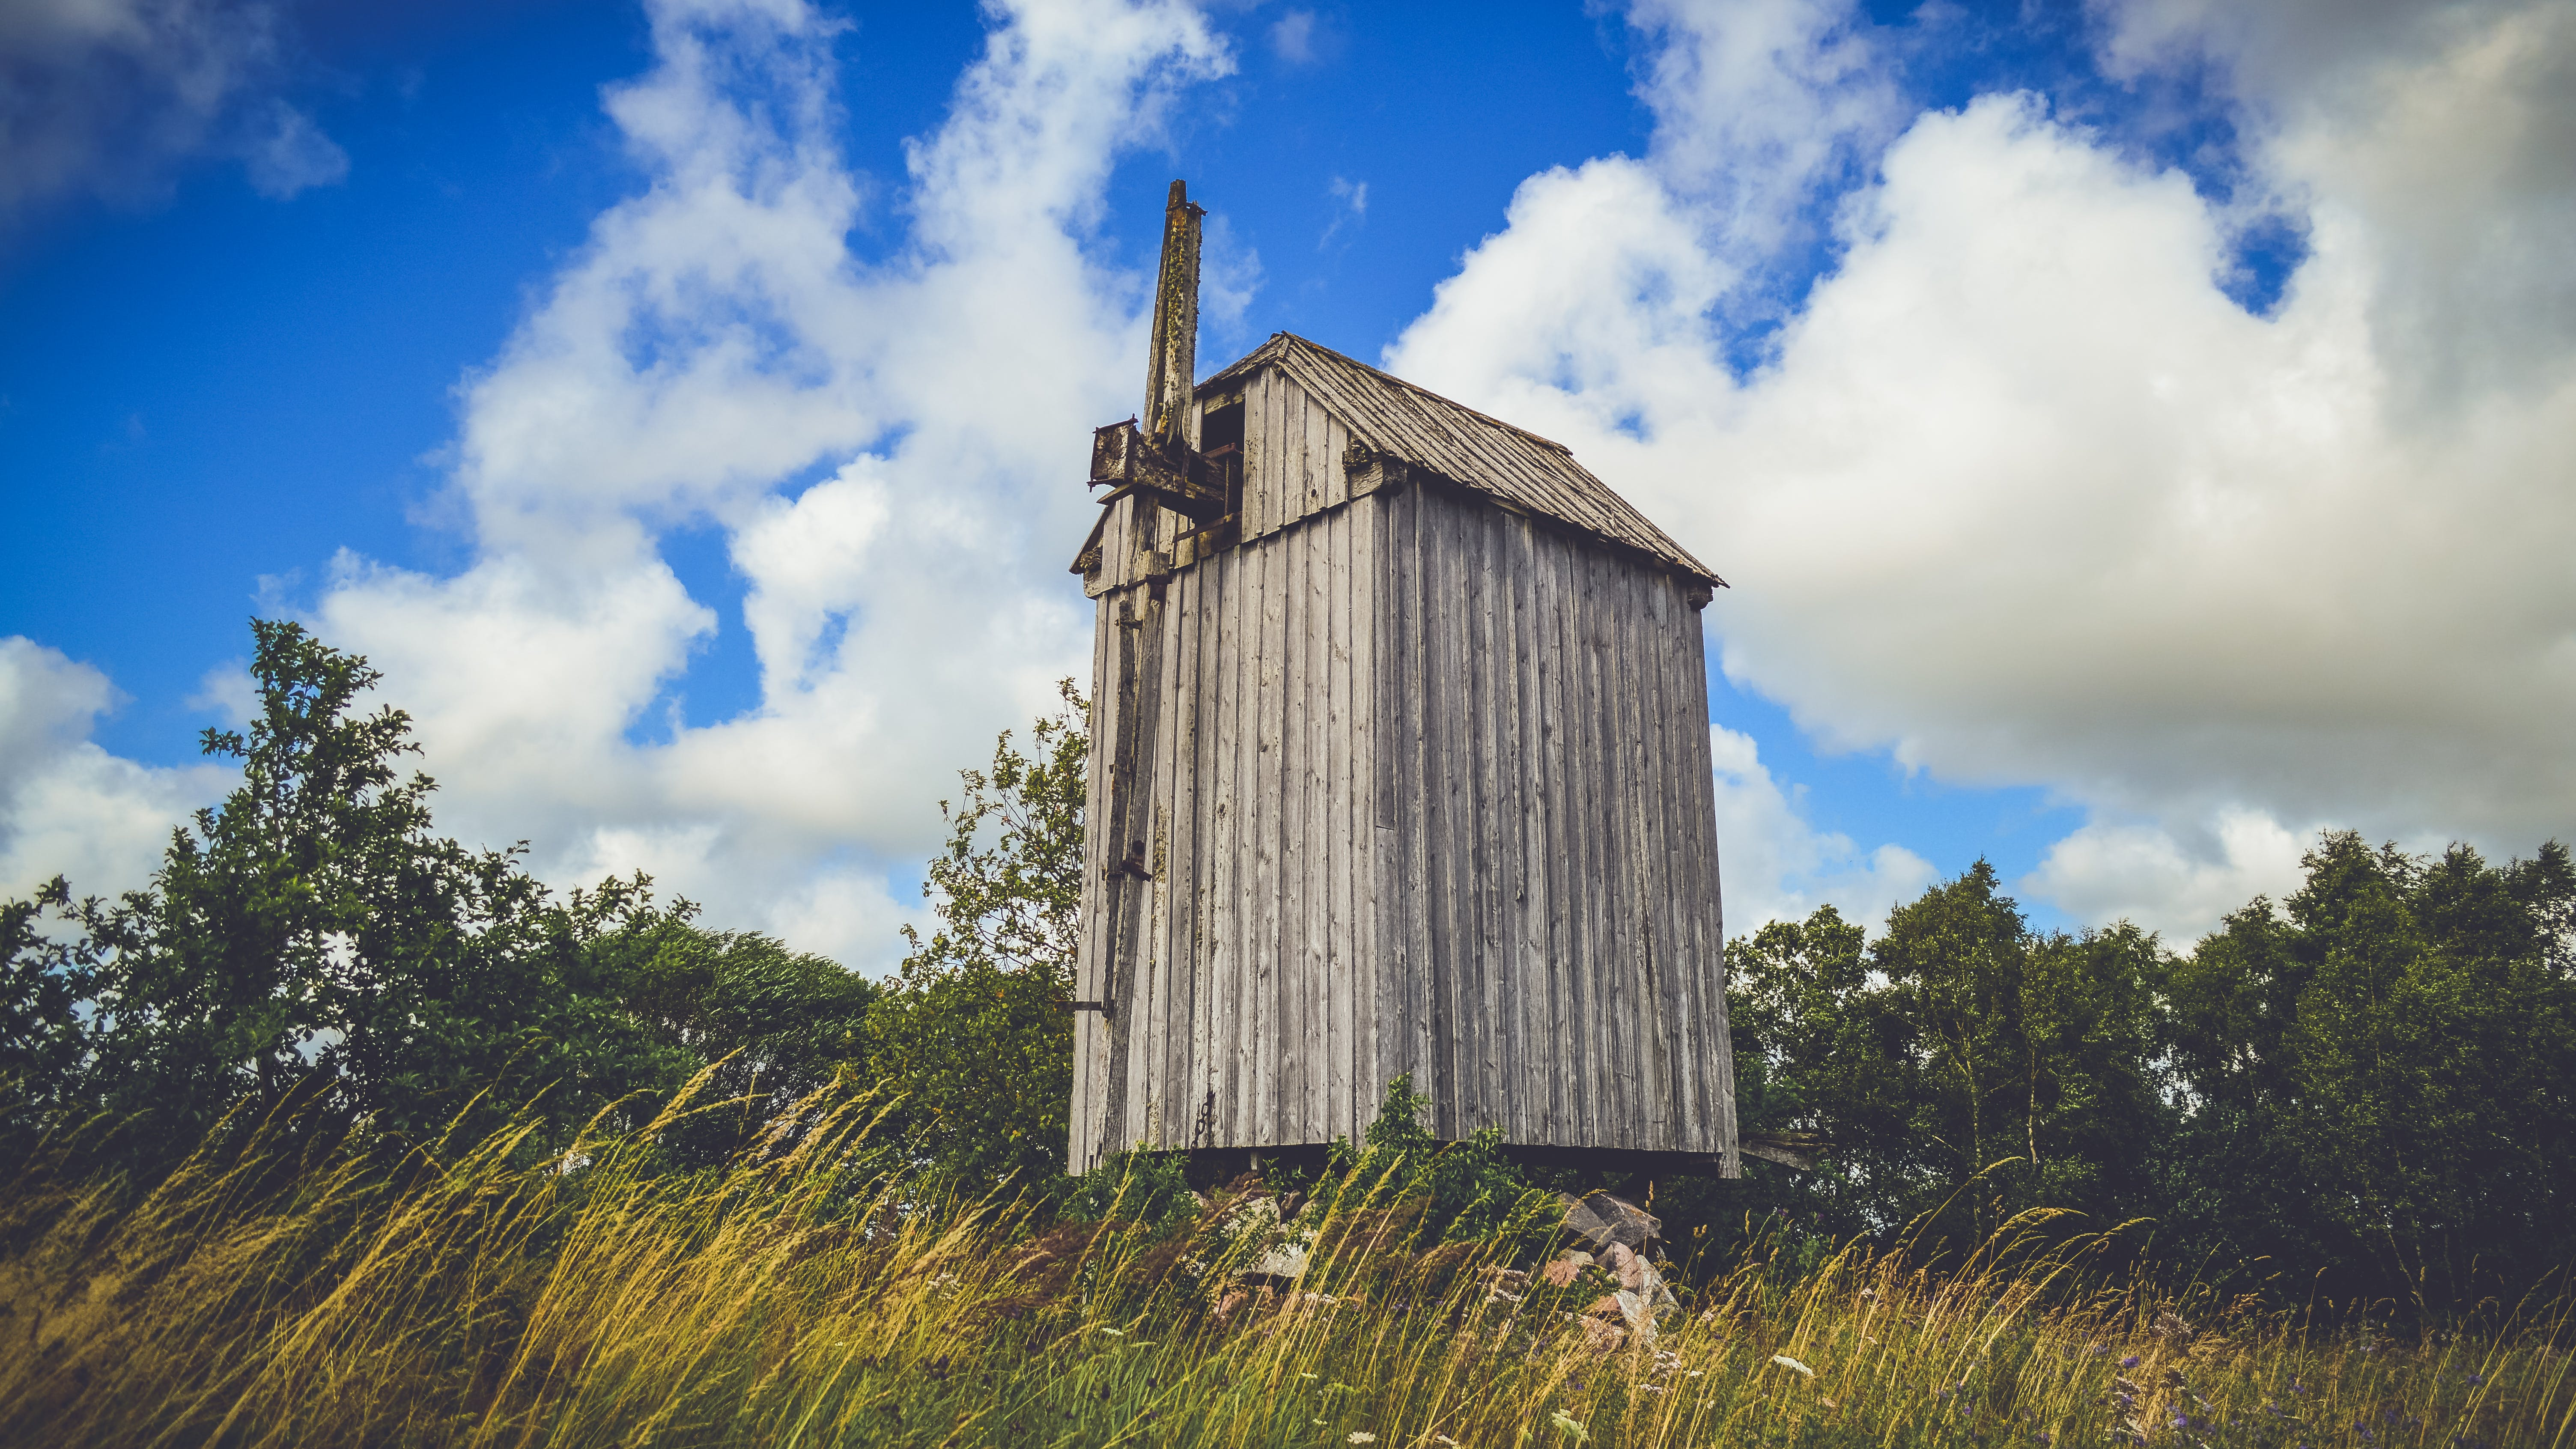 Brown Wooden Shed and Grass Field